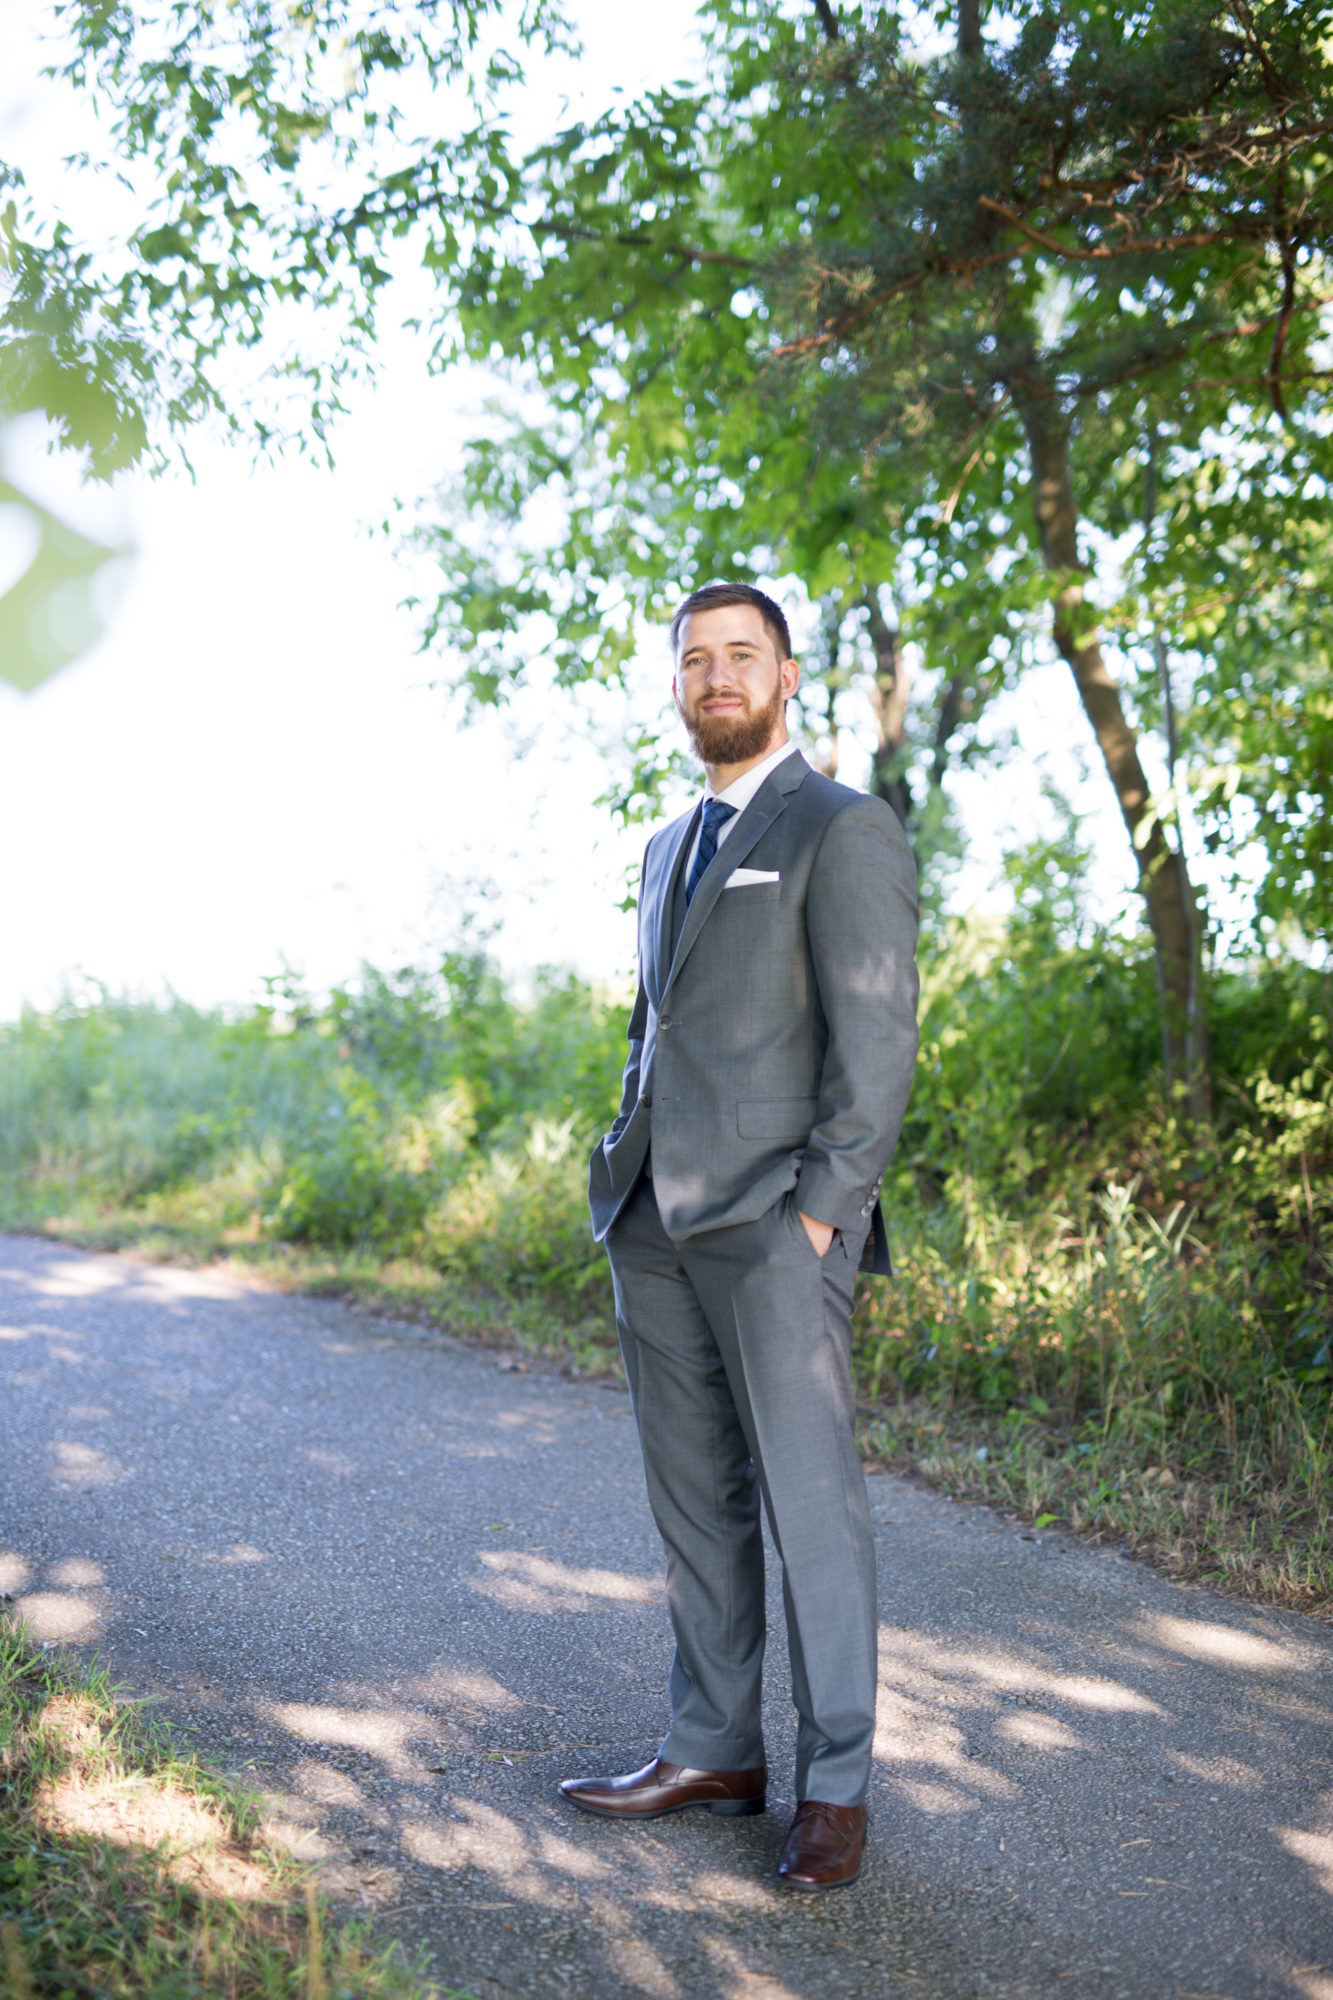 Groom Grey Suit Portrait Golf Course Wedding King City Zsuzsi Pal Photography